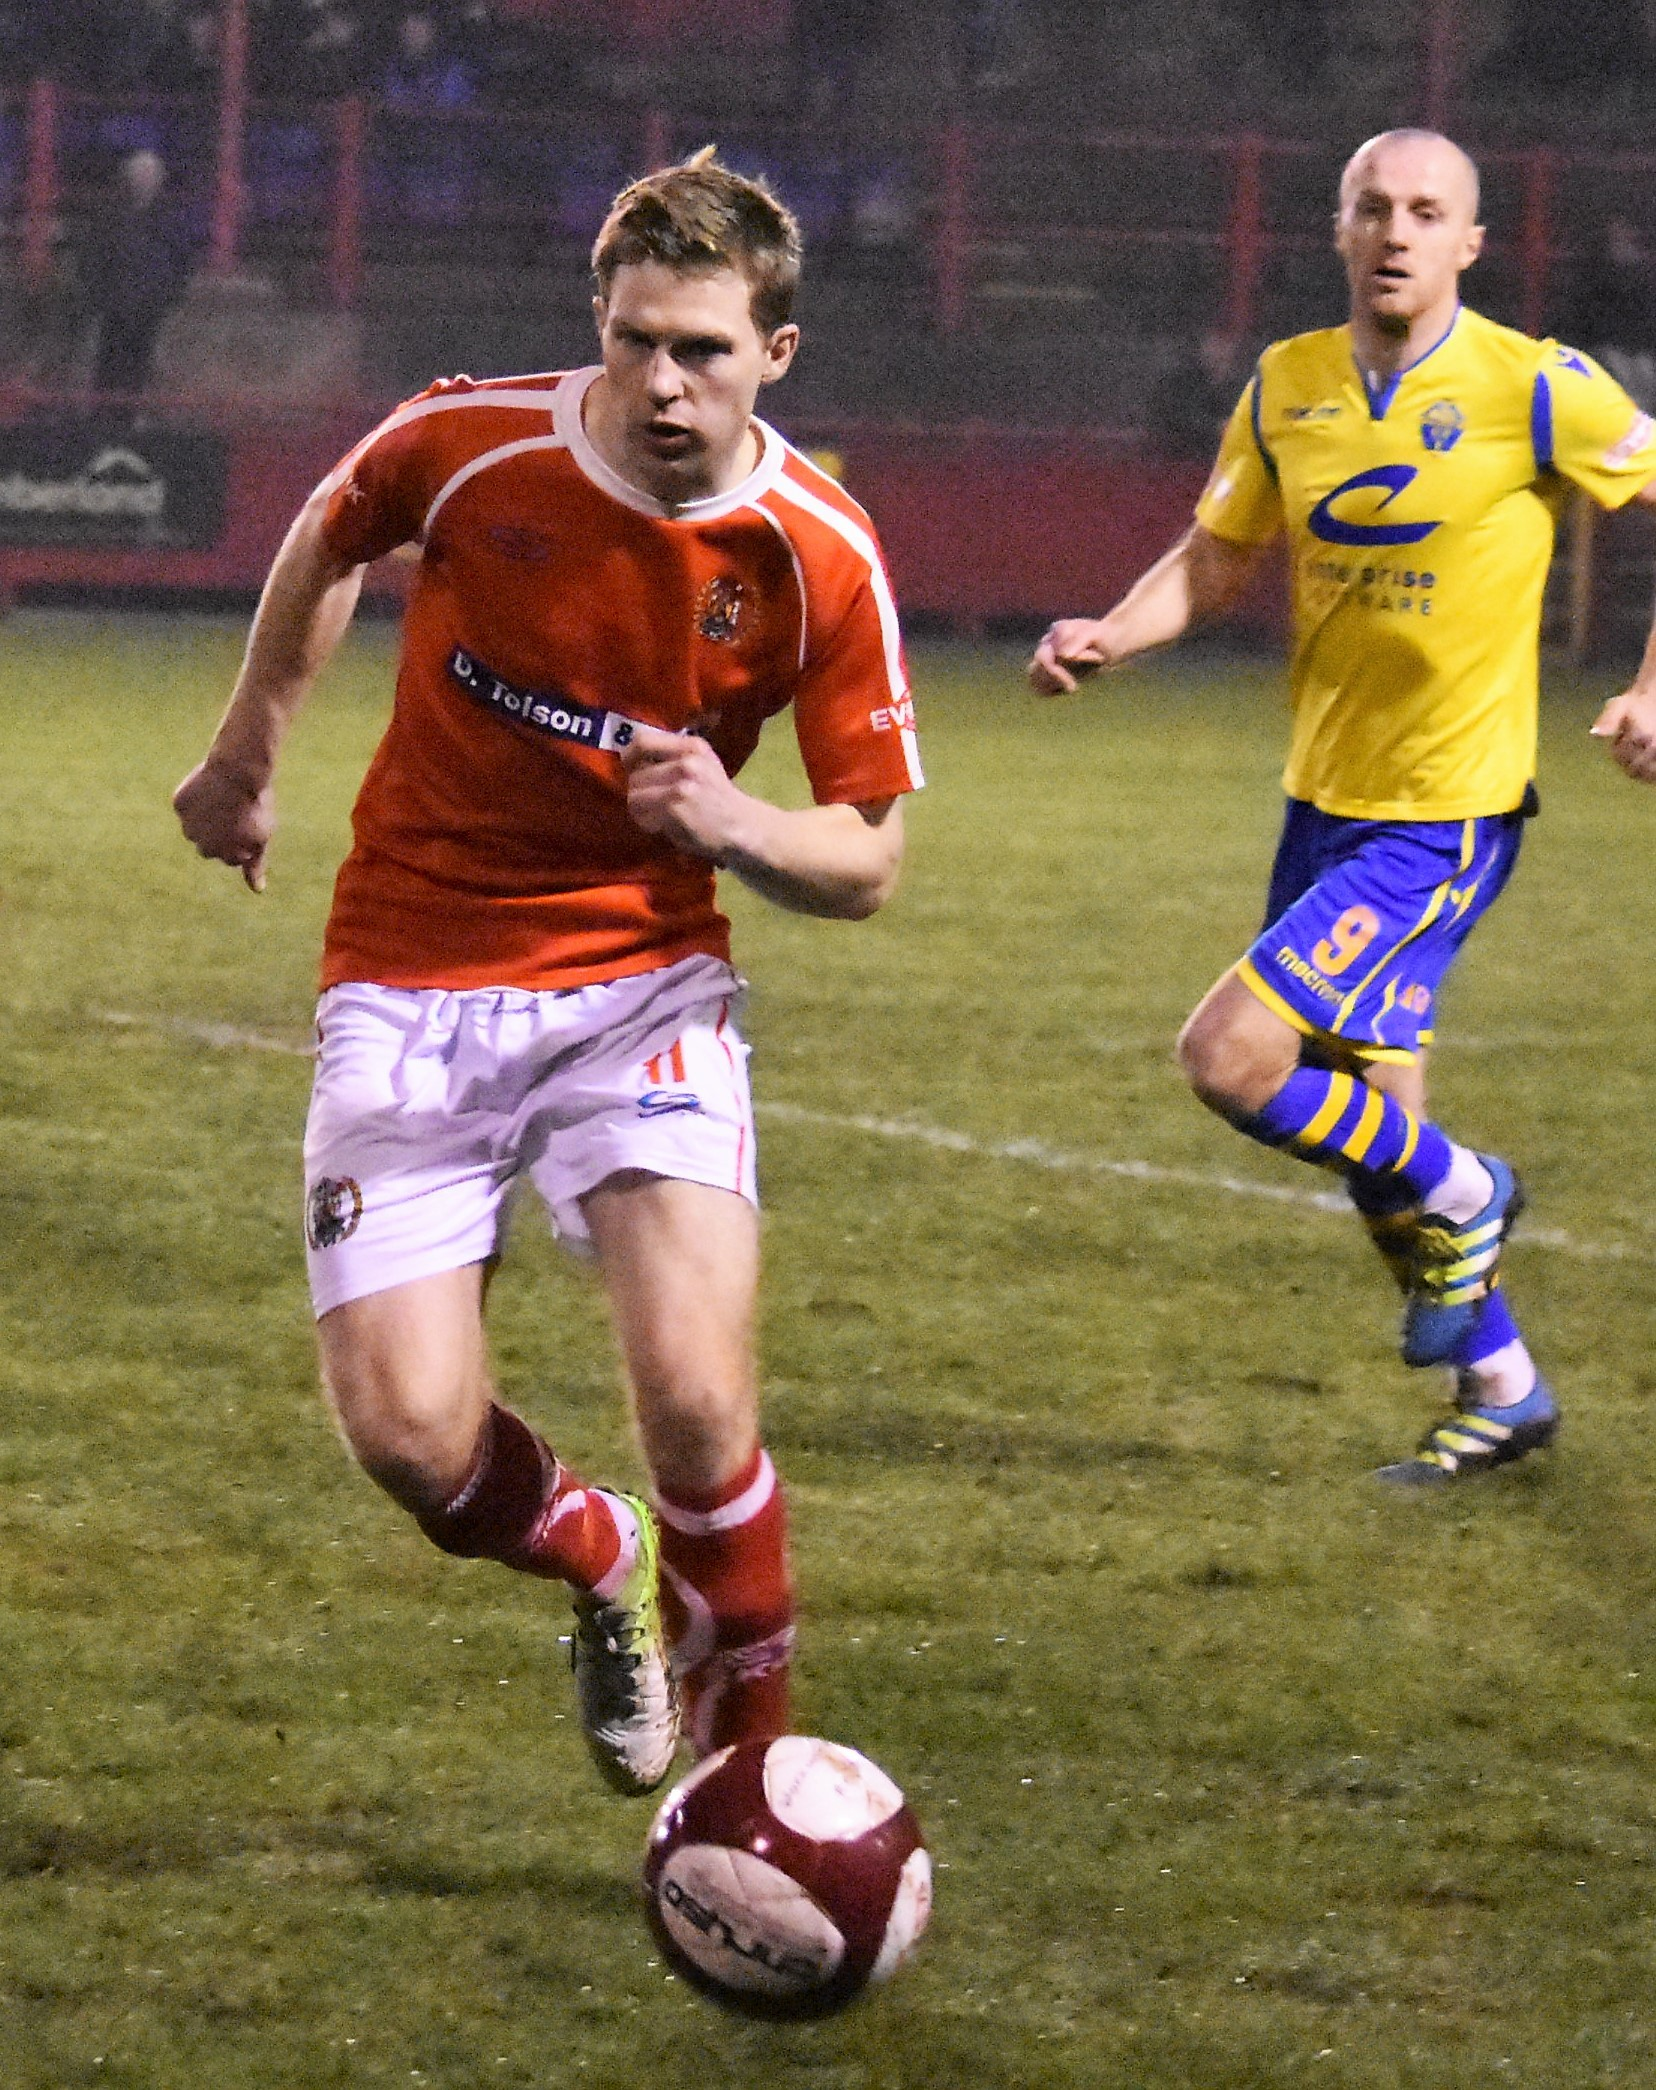 Conor Tinnion was singled out for praise by the Farsley boss